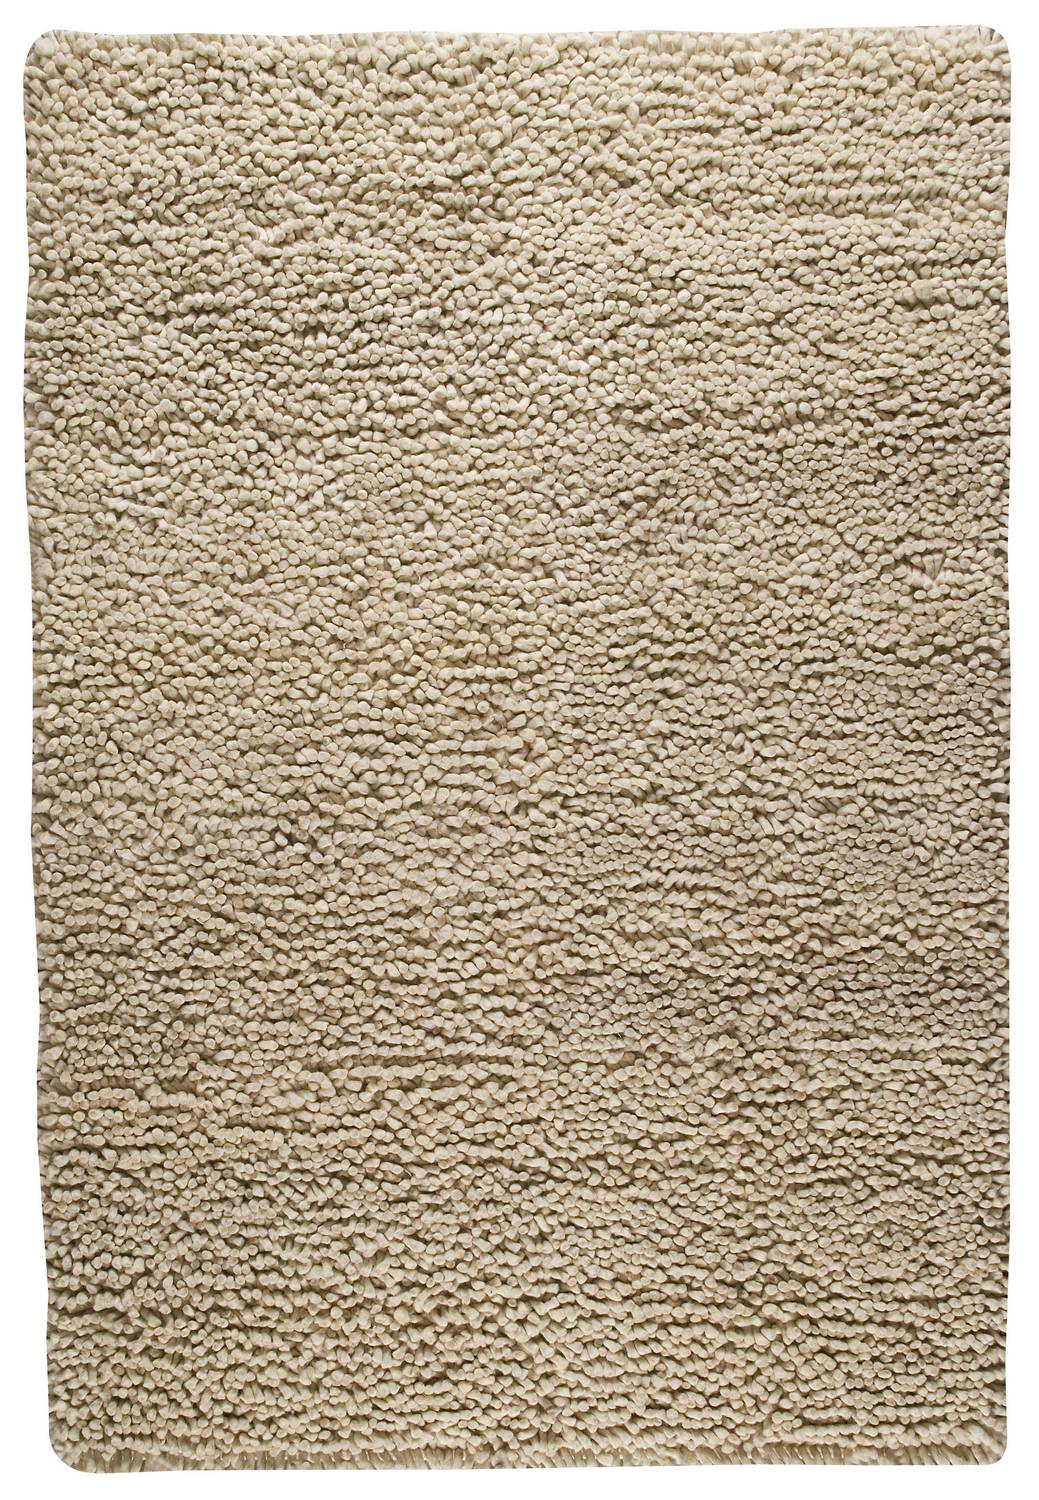 Mat the basics berber area rug natural for Wool berber area rug